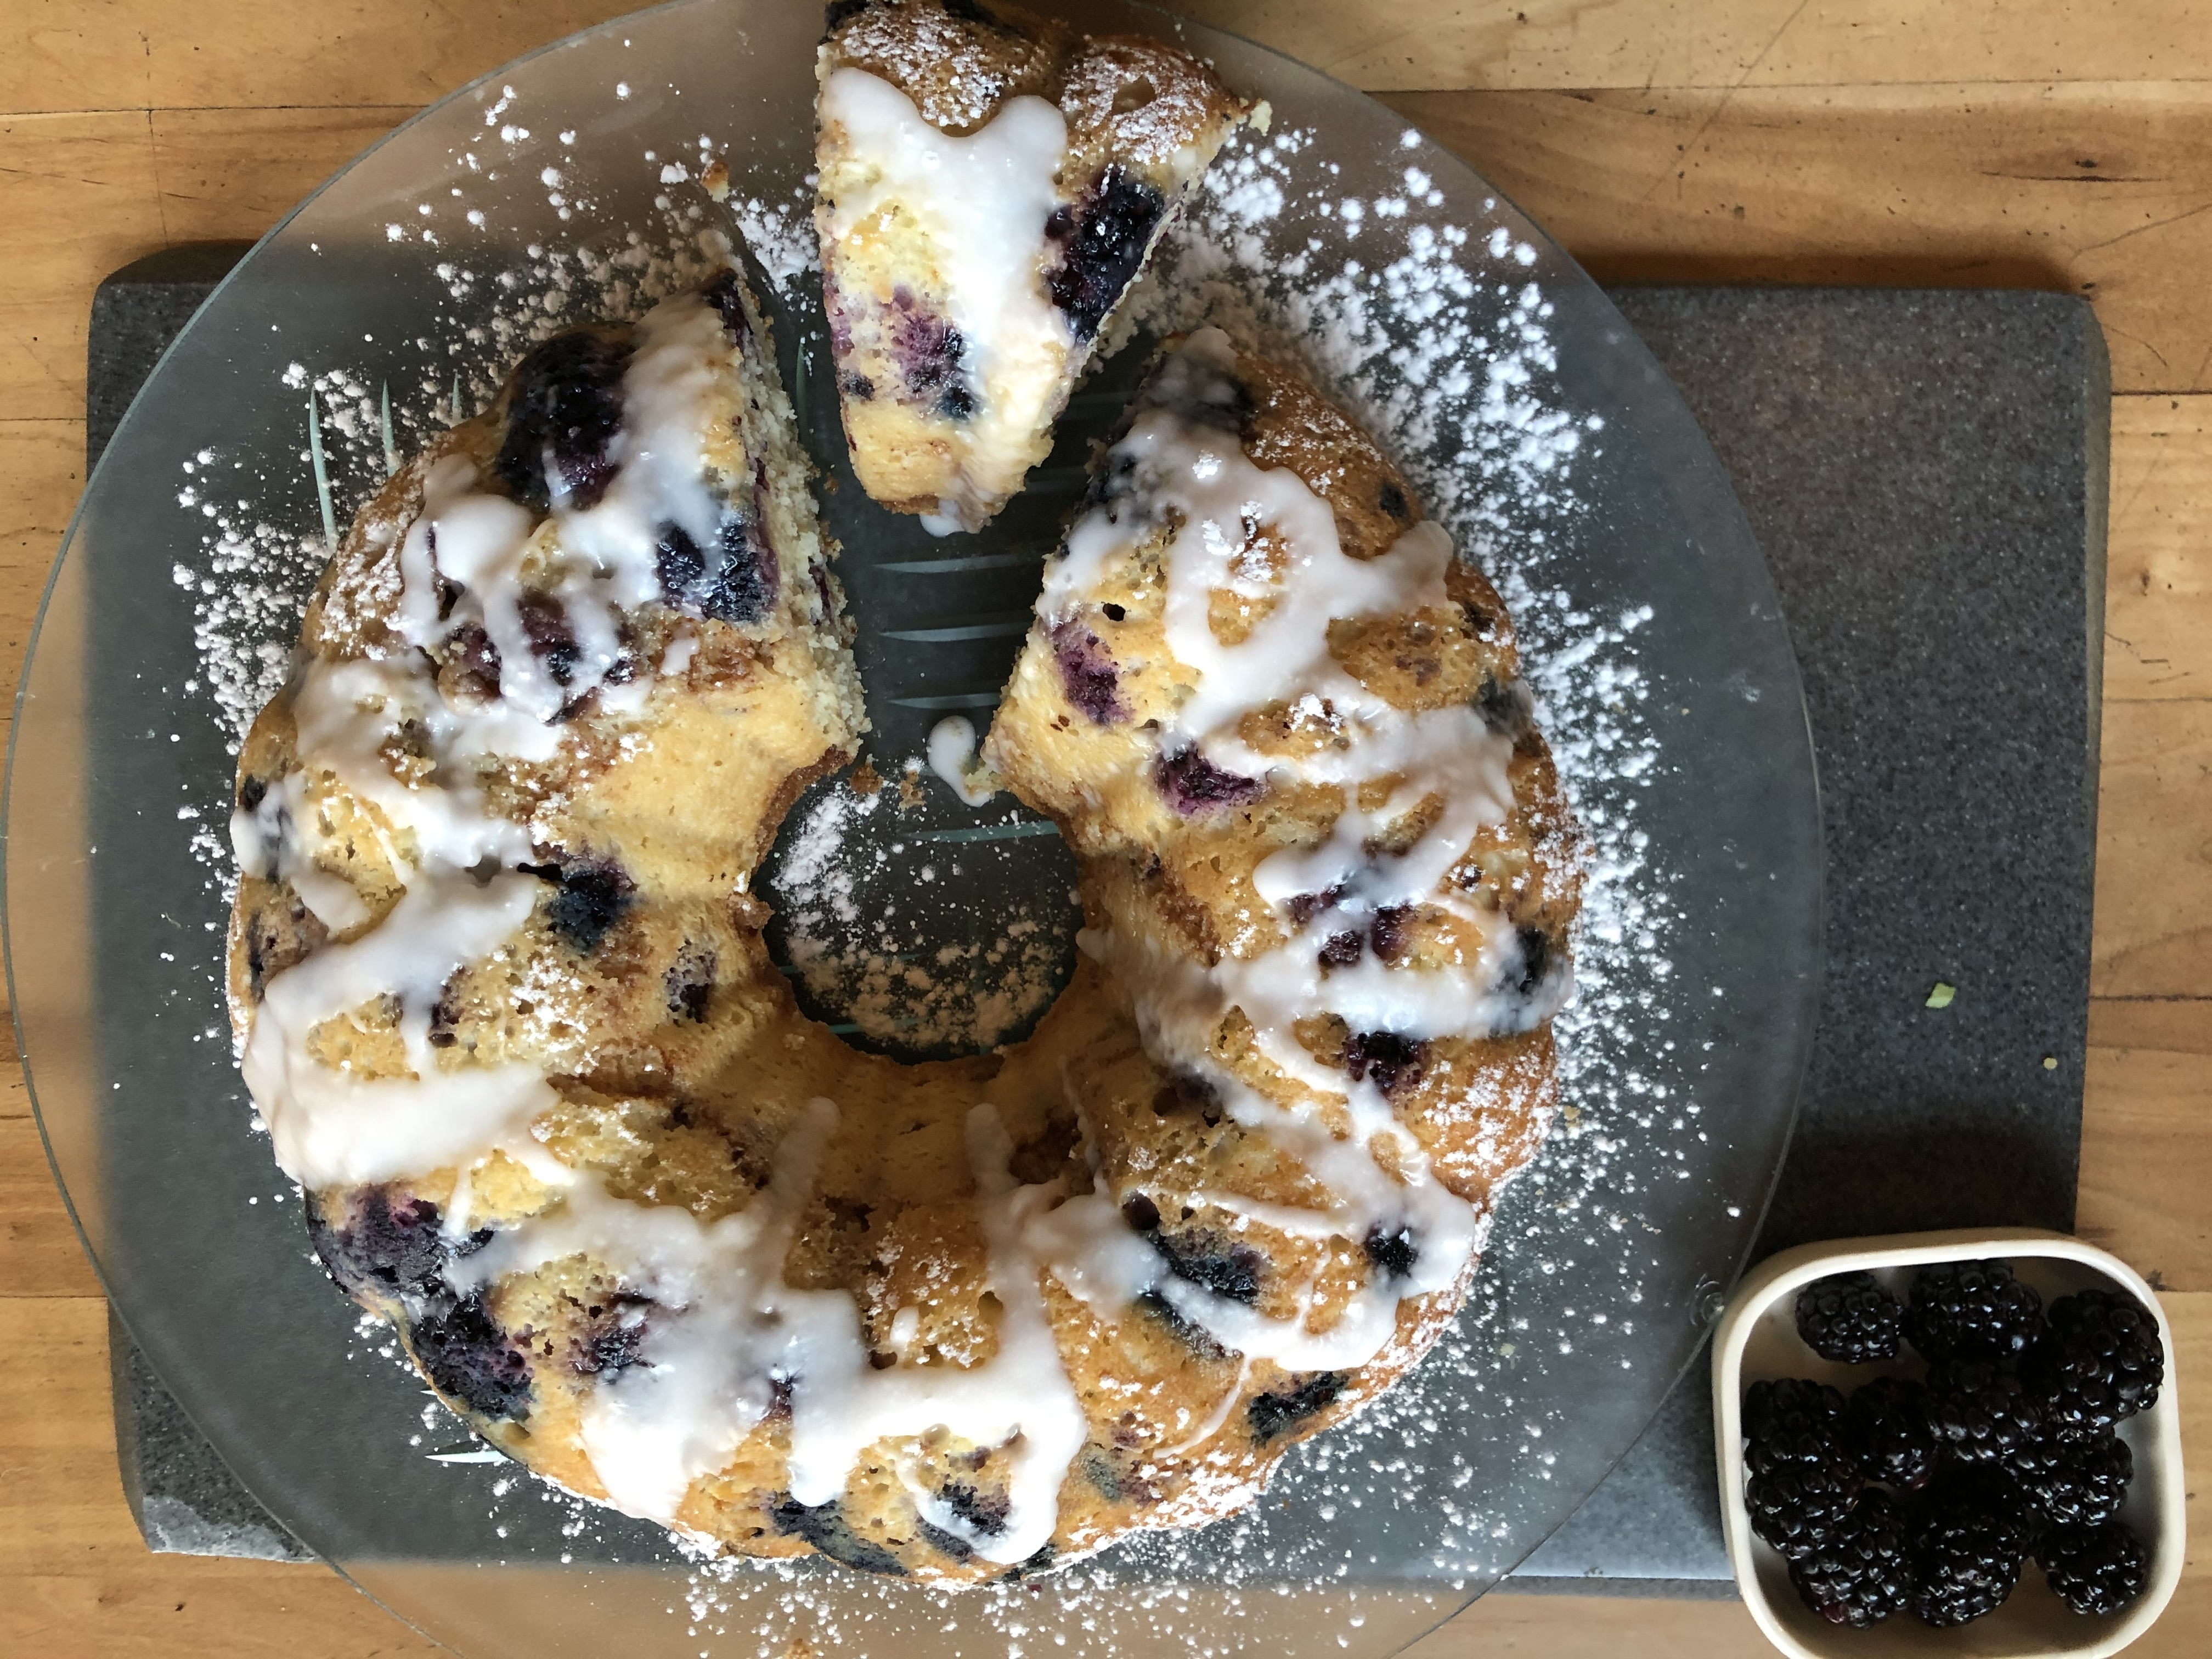 Blueberry Crumb Streusel Cake